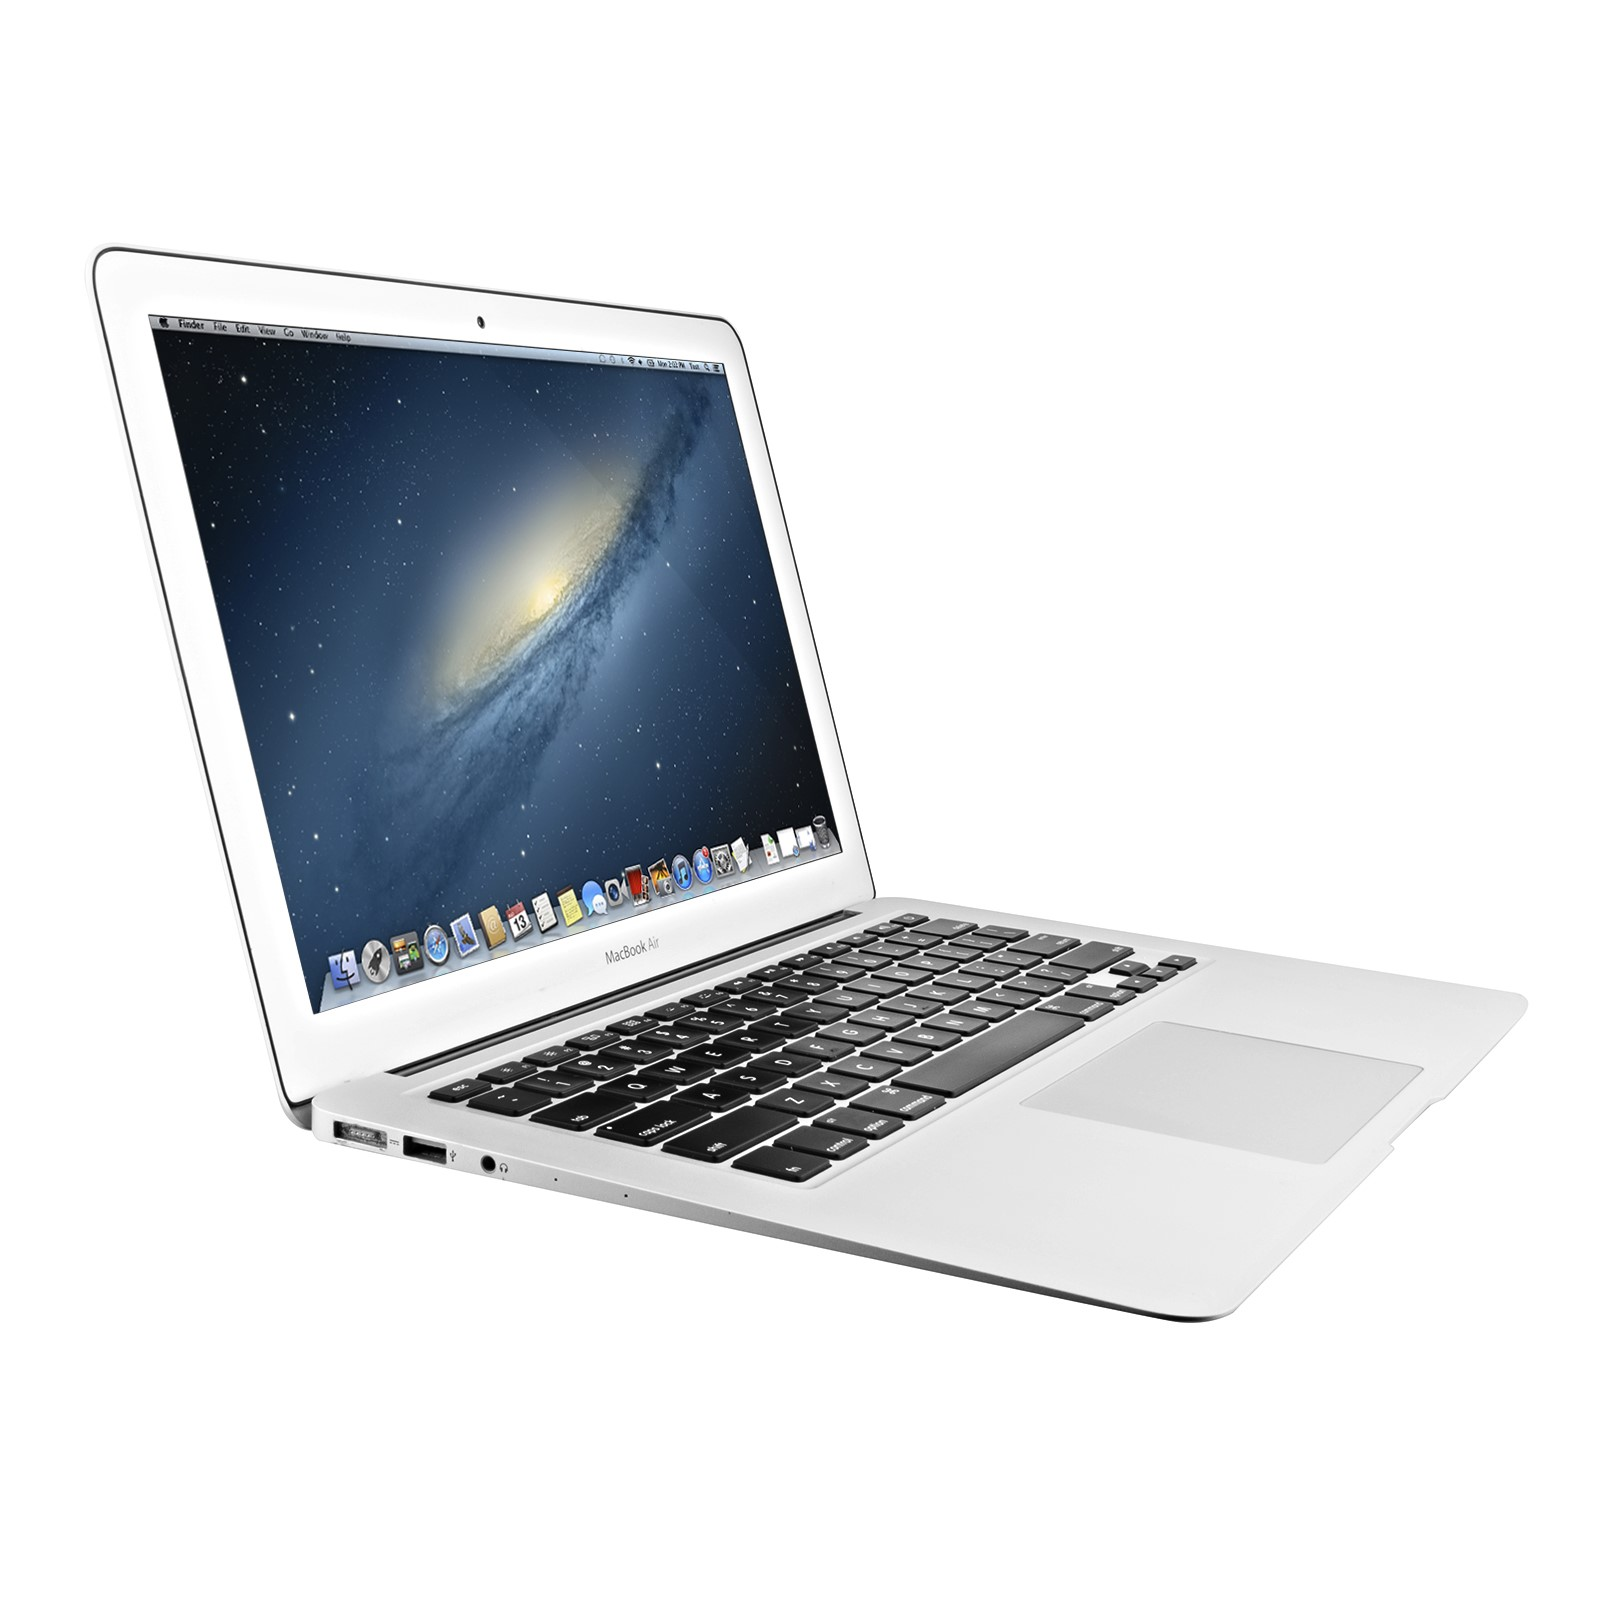 apple macbook air 13 1 3 ghz 128 gb ssd 4gb yosemite md760ll a 885909942763 ebay. Black Bedroom Furniture Sets. Home Design Ideas